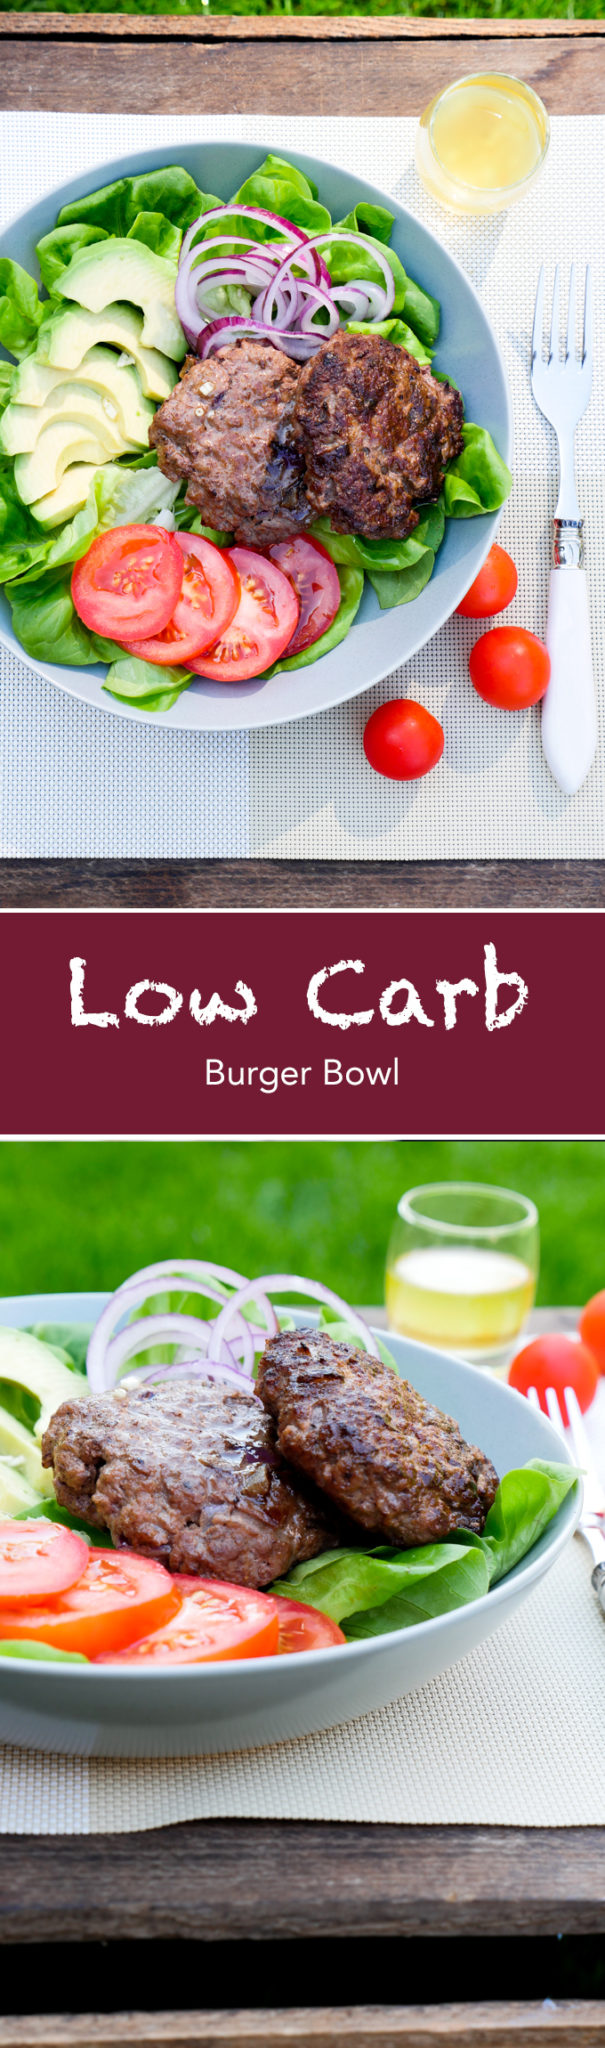 Low Carb Burger Bowl mit Avocado und Tomaten